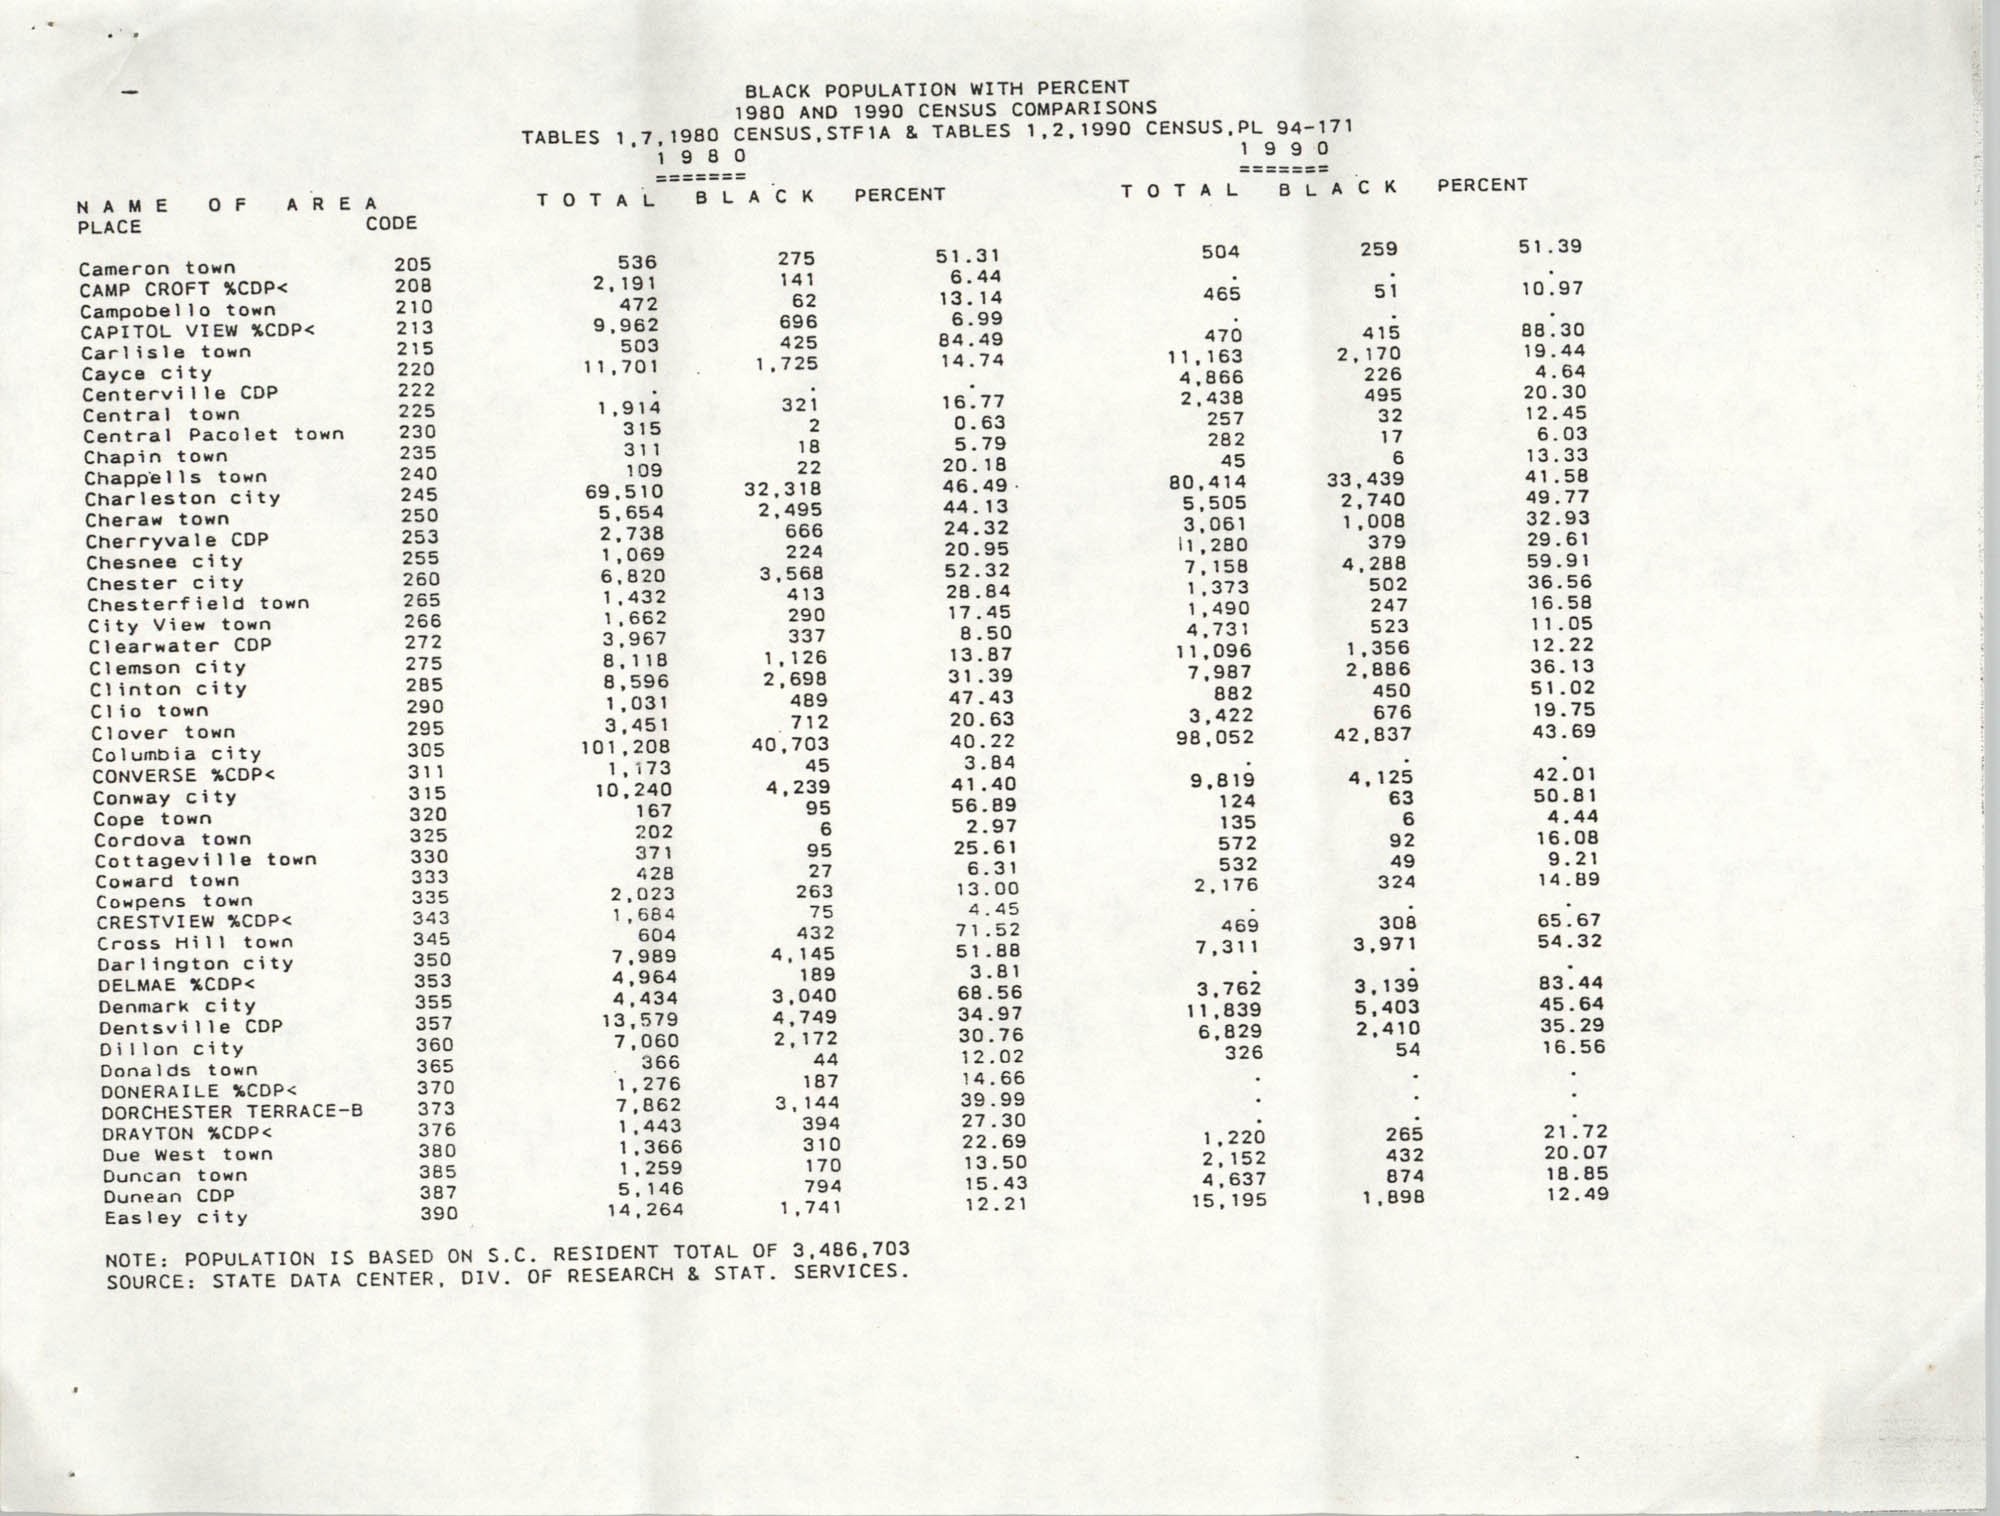 Black Population with Percent, 1980 and 1990 Census Comparison, Page 3